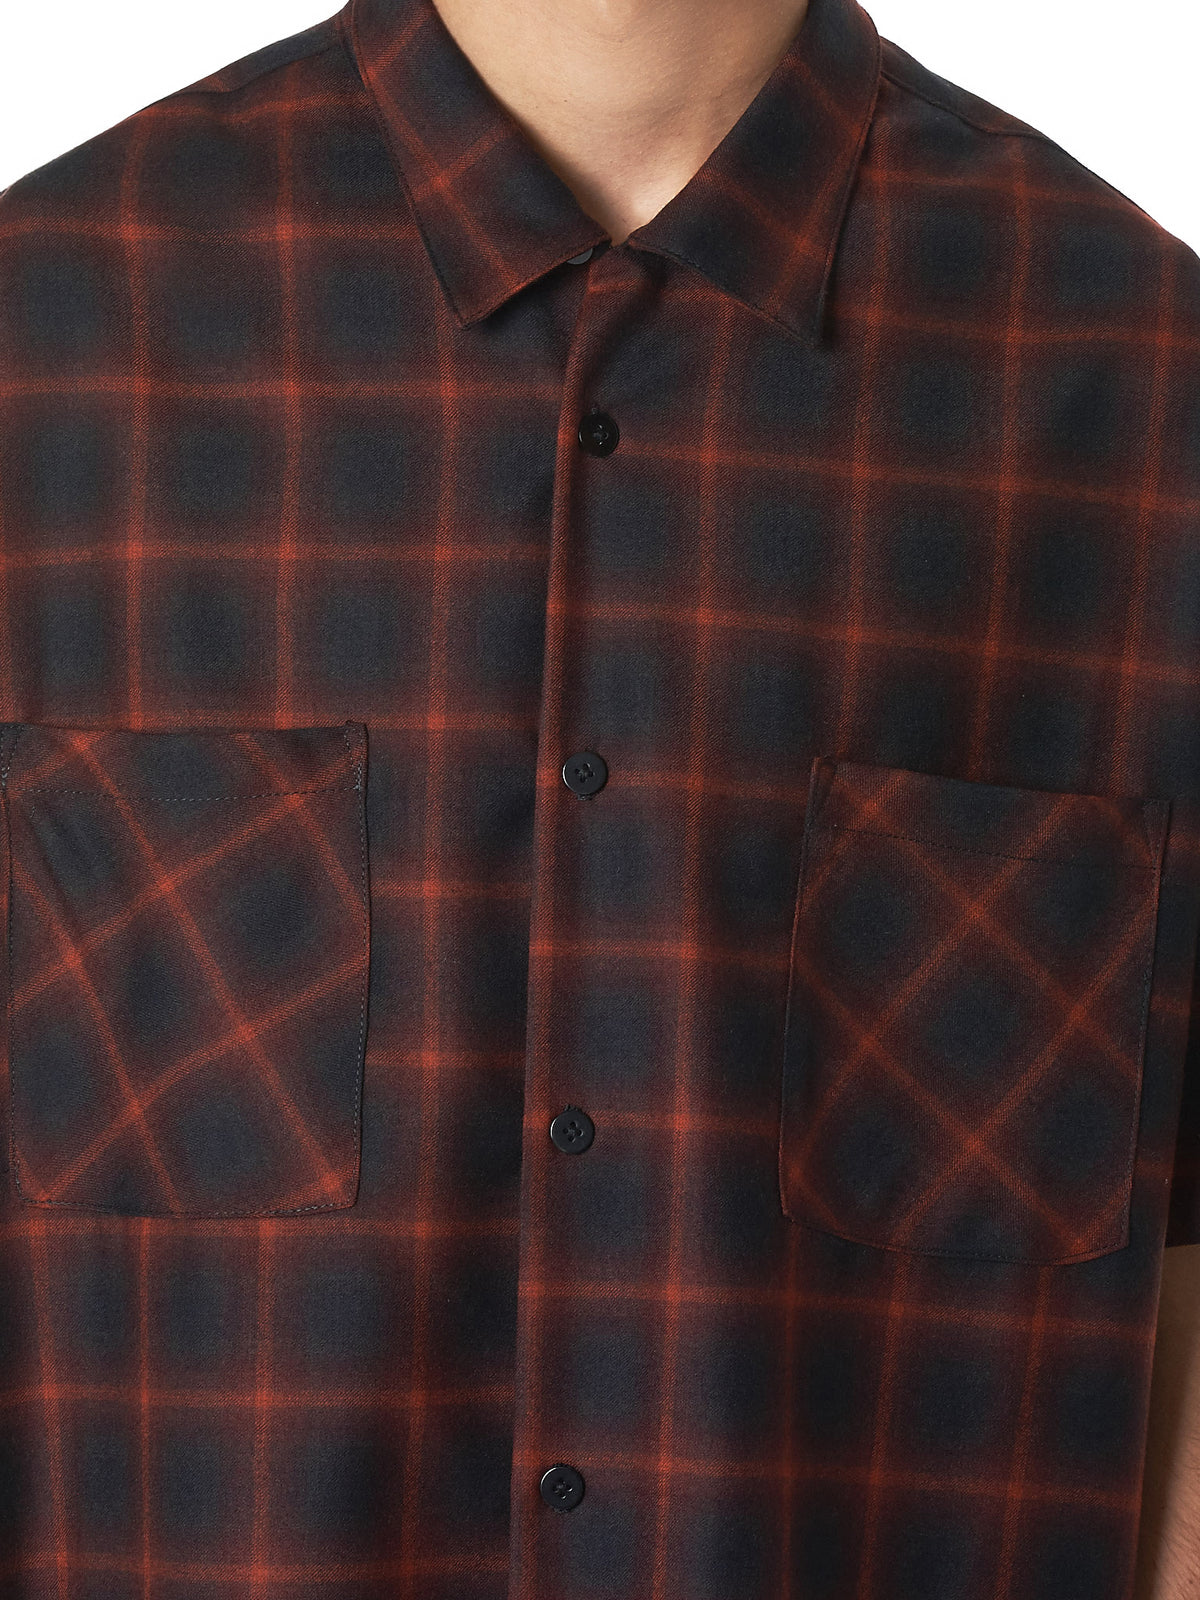 Nahmias Plaid Shirt - Hlorenzo detail 2